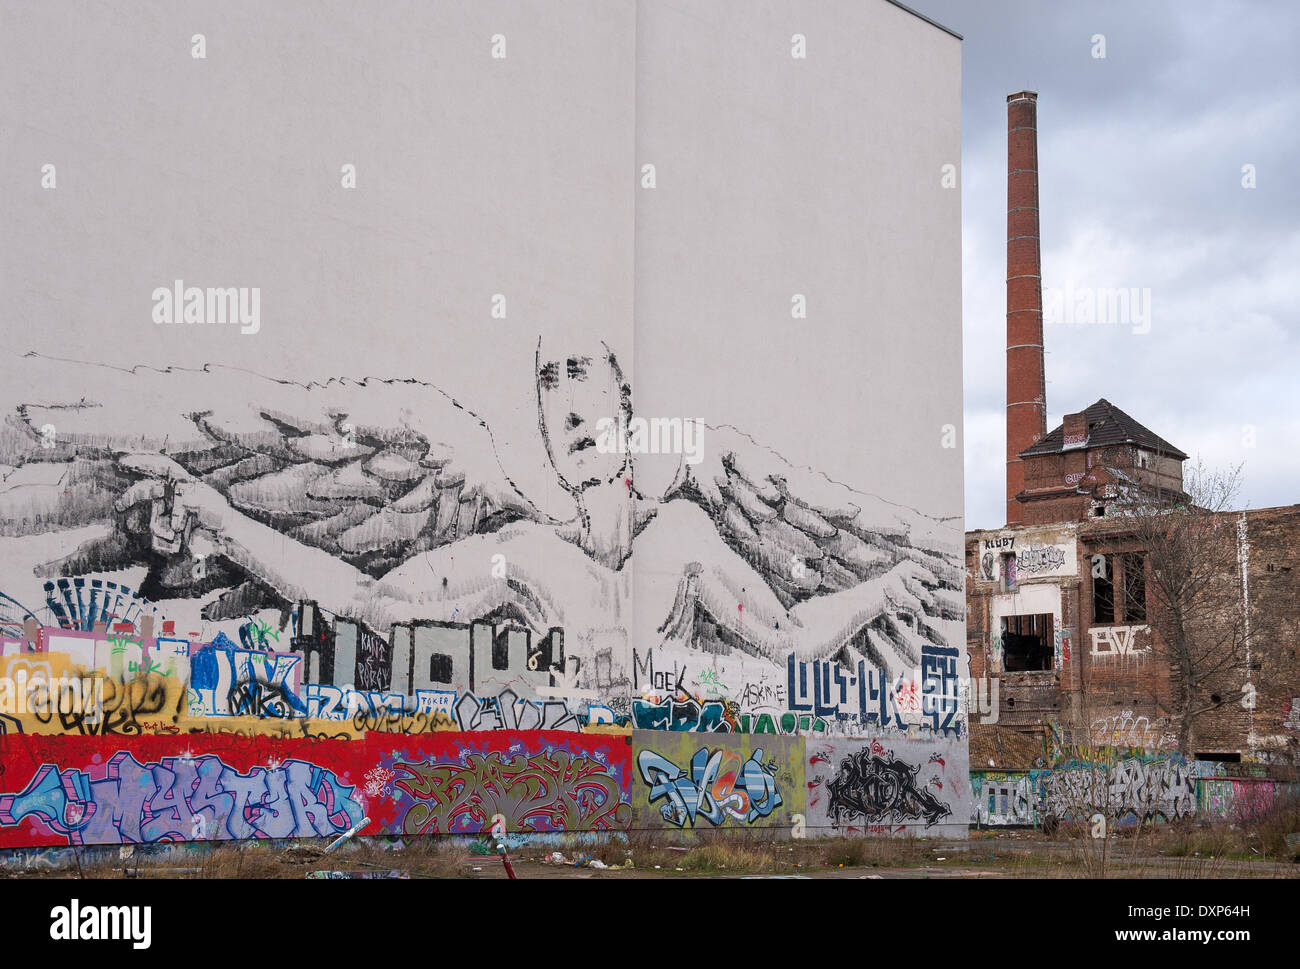 Berlin, Germany, fire wall with graffiti and ruin the ice cream factory - Stock Image